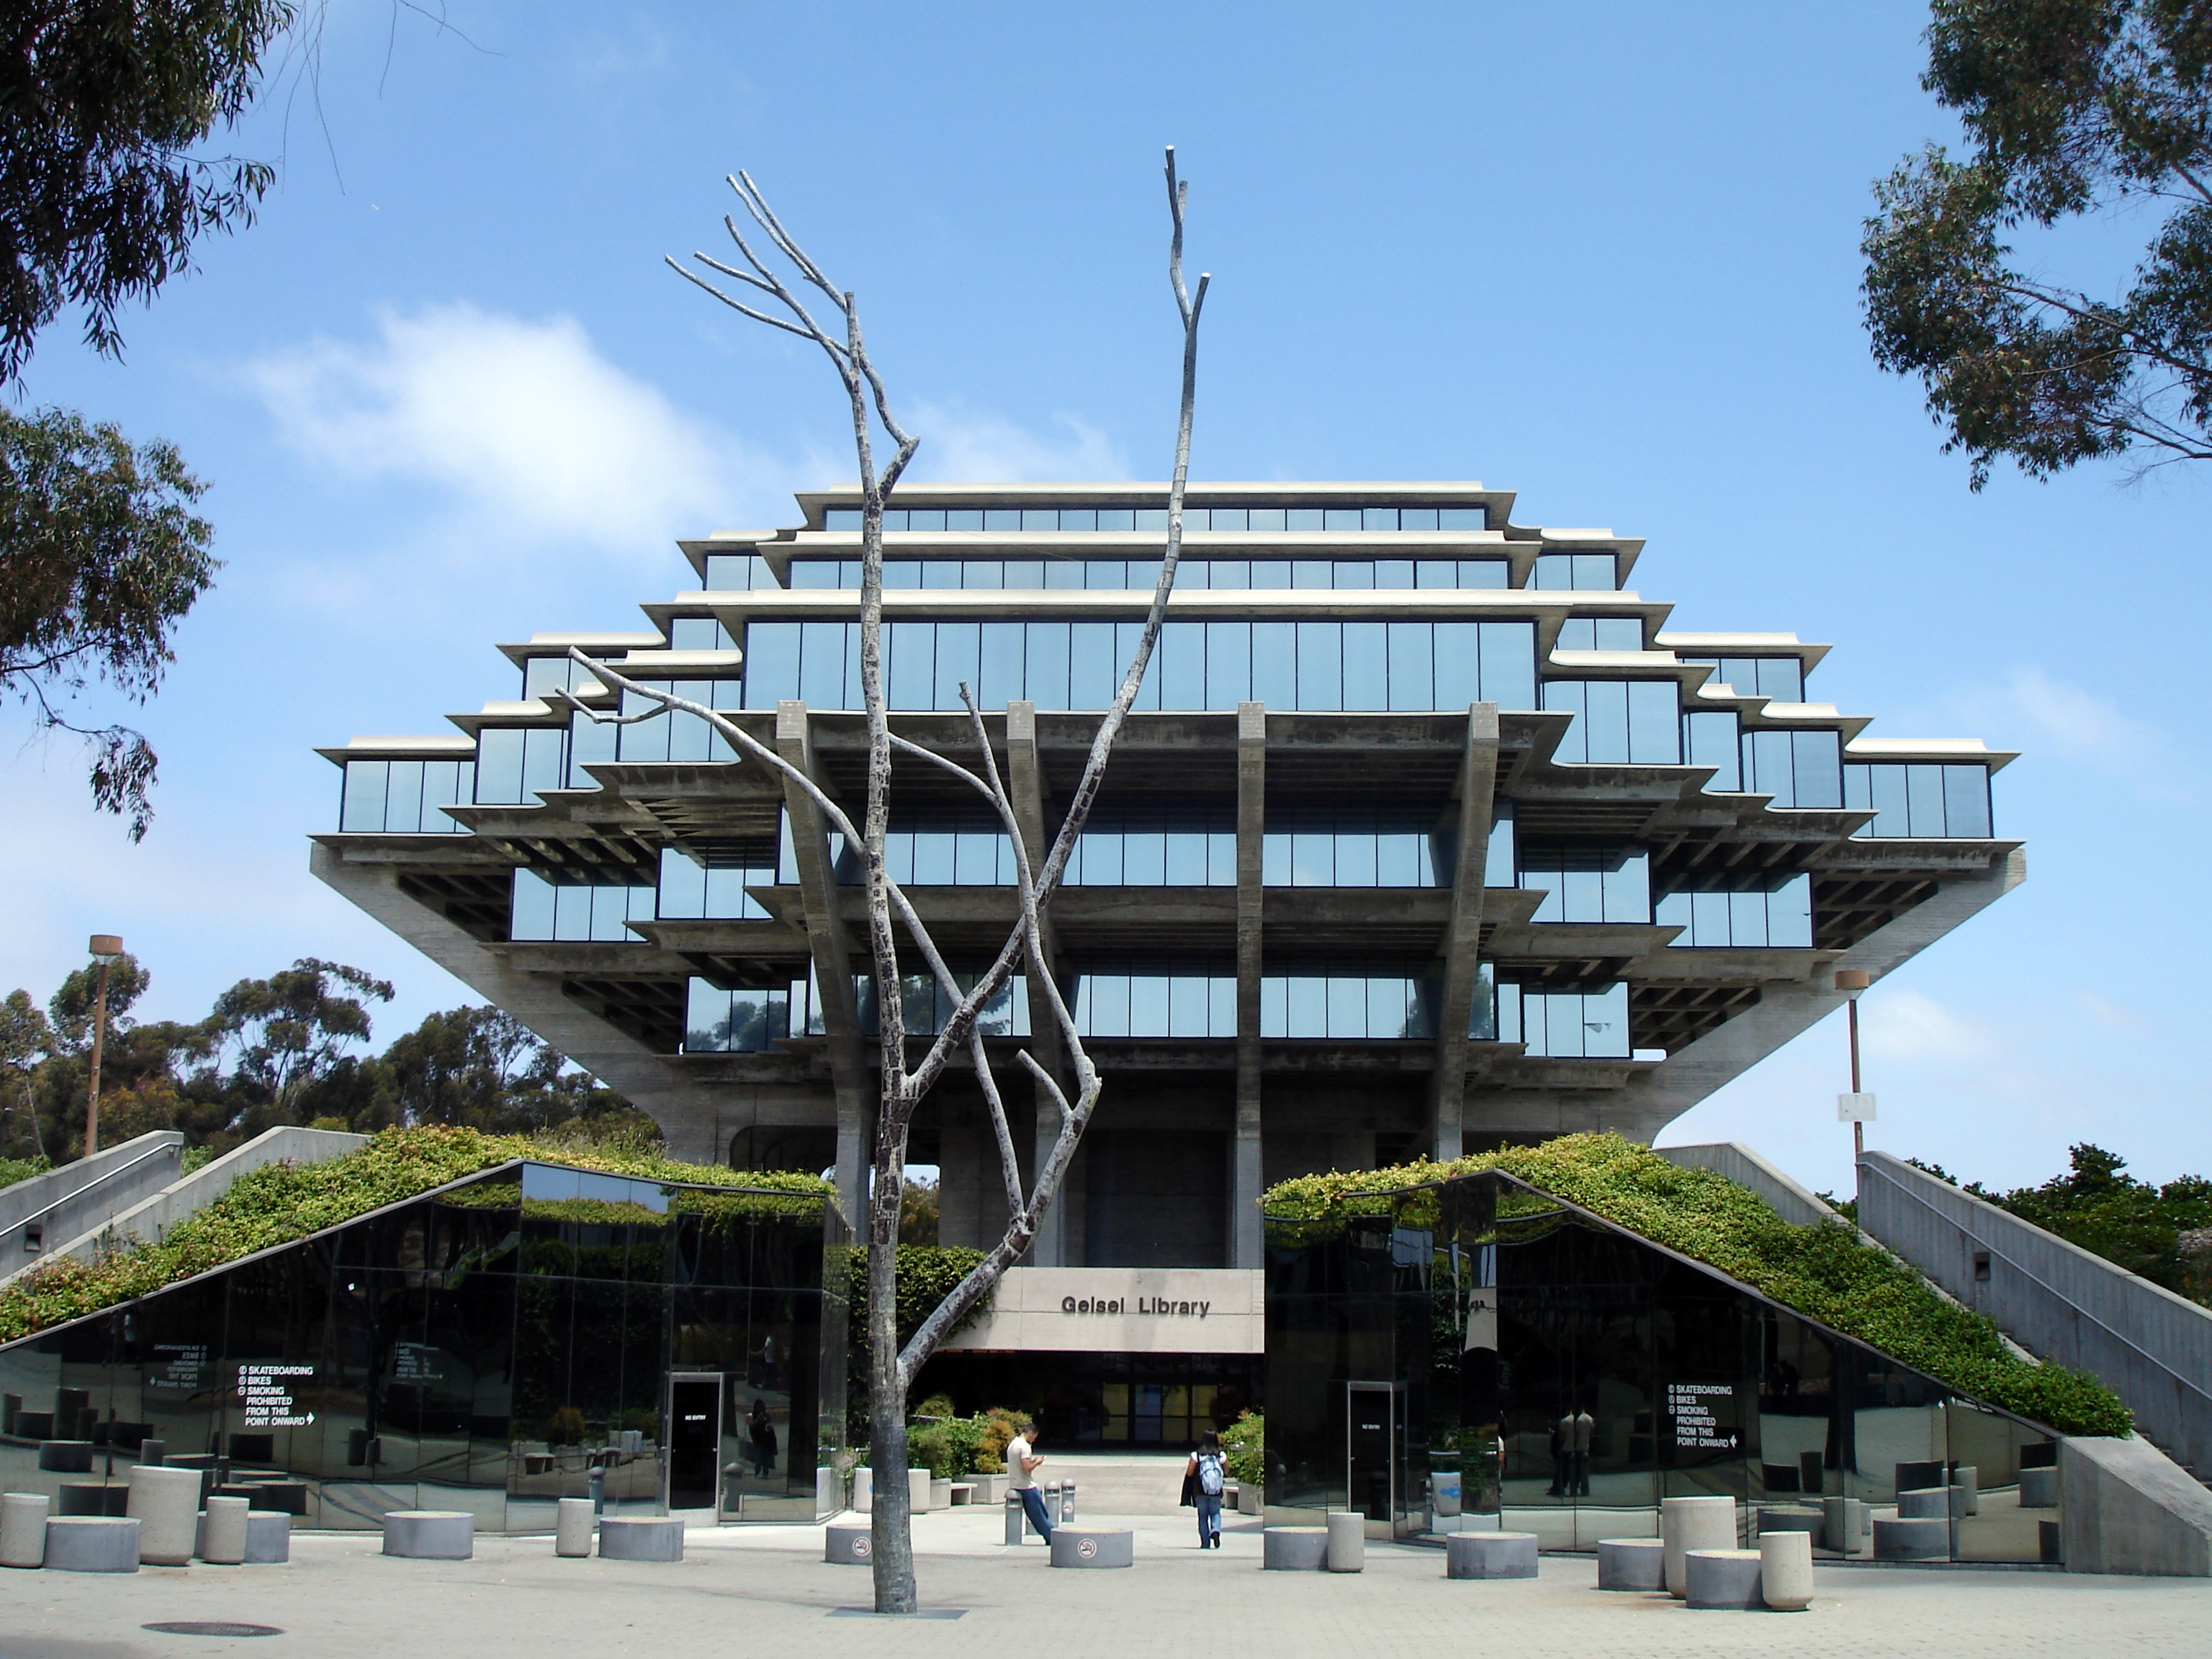 finals traditions - Geisel Library